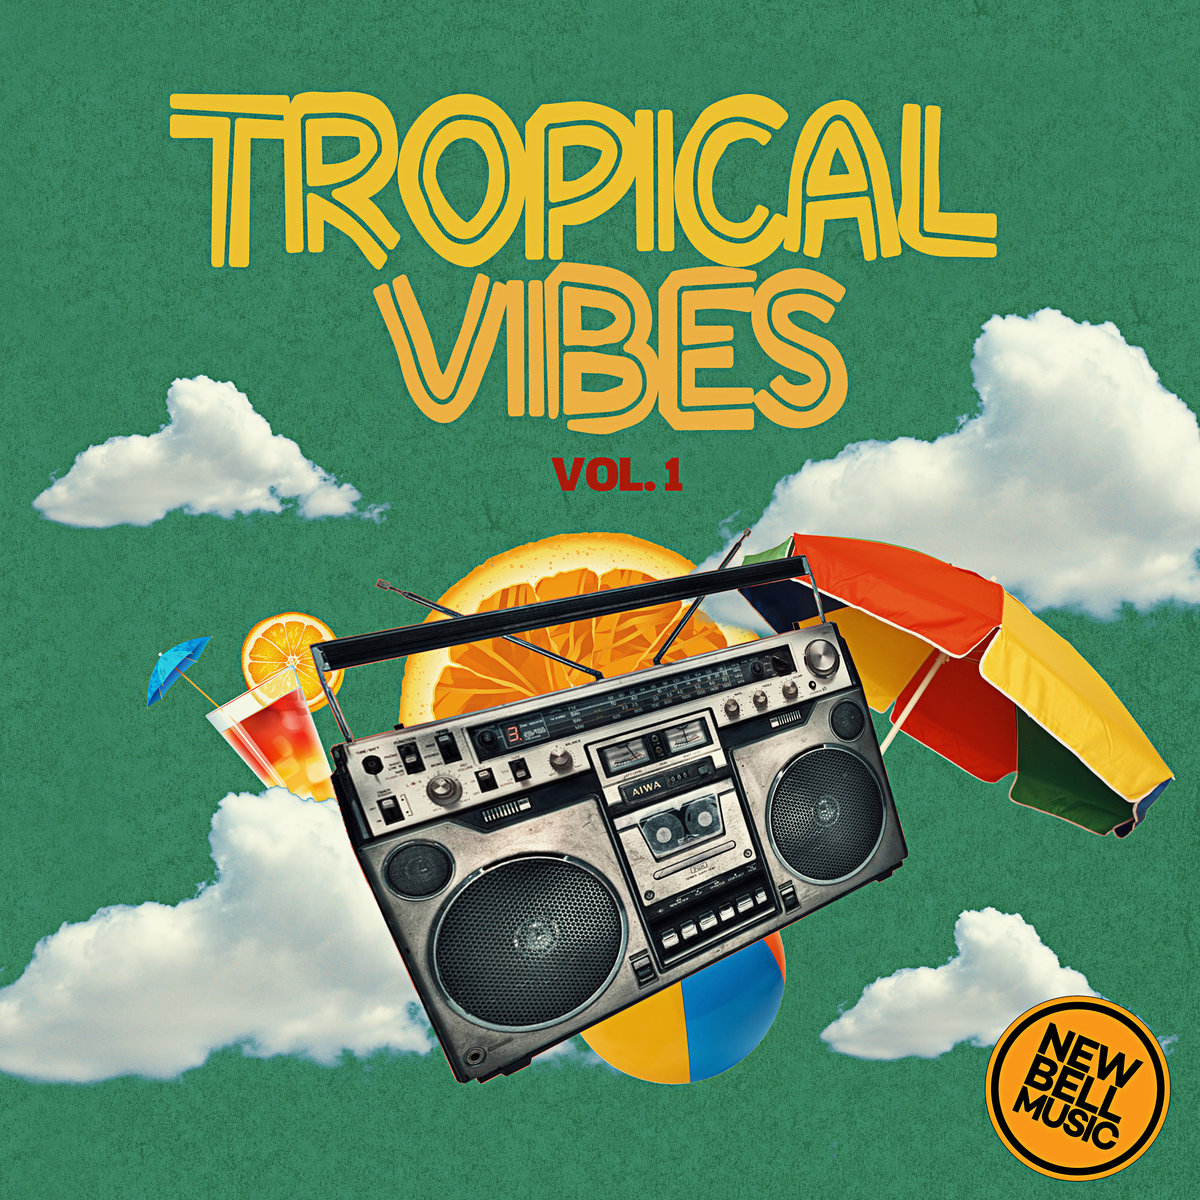 NEW BELL MUSIC - TROPICAL VIBES.jpg